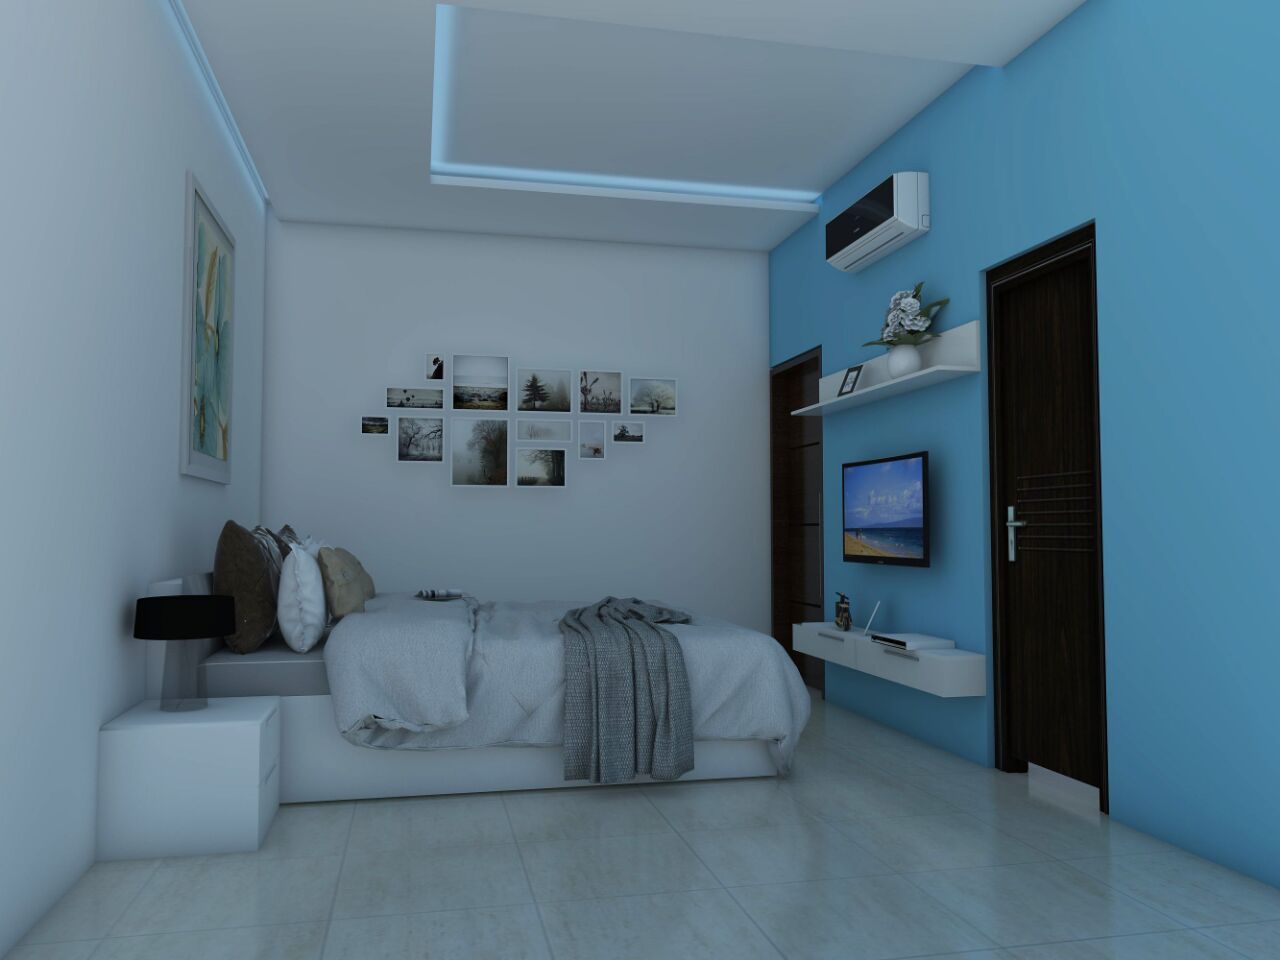 Sky blue themed 3D model of a master bedroom with polished whire tiled floor by L Santosh Kumar Bedroom Modern | Interior Design Photos & Ideas